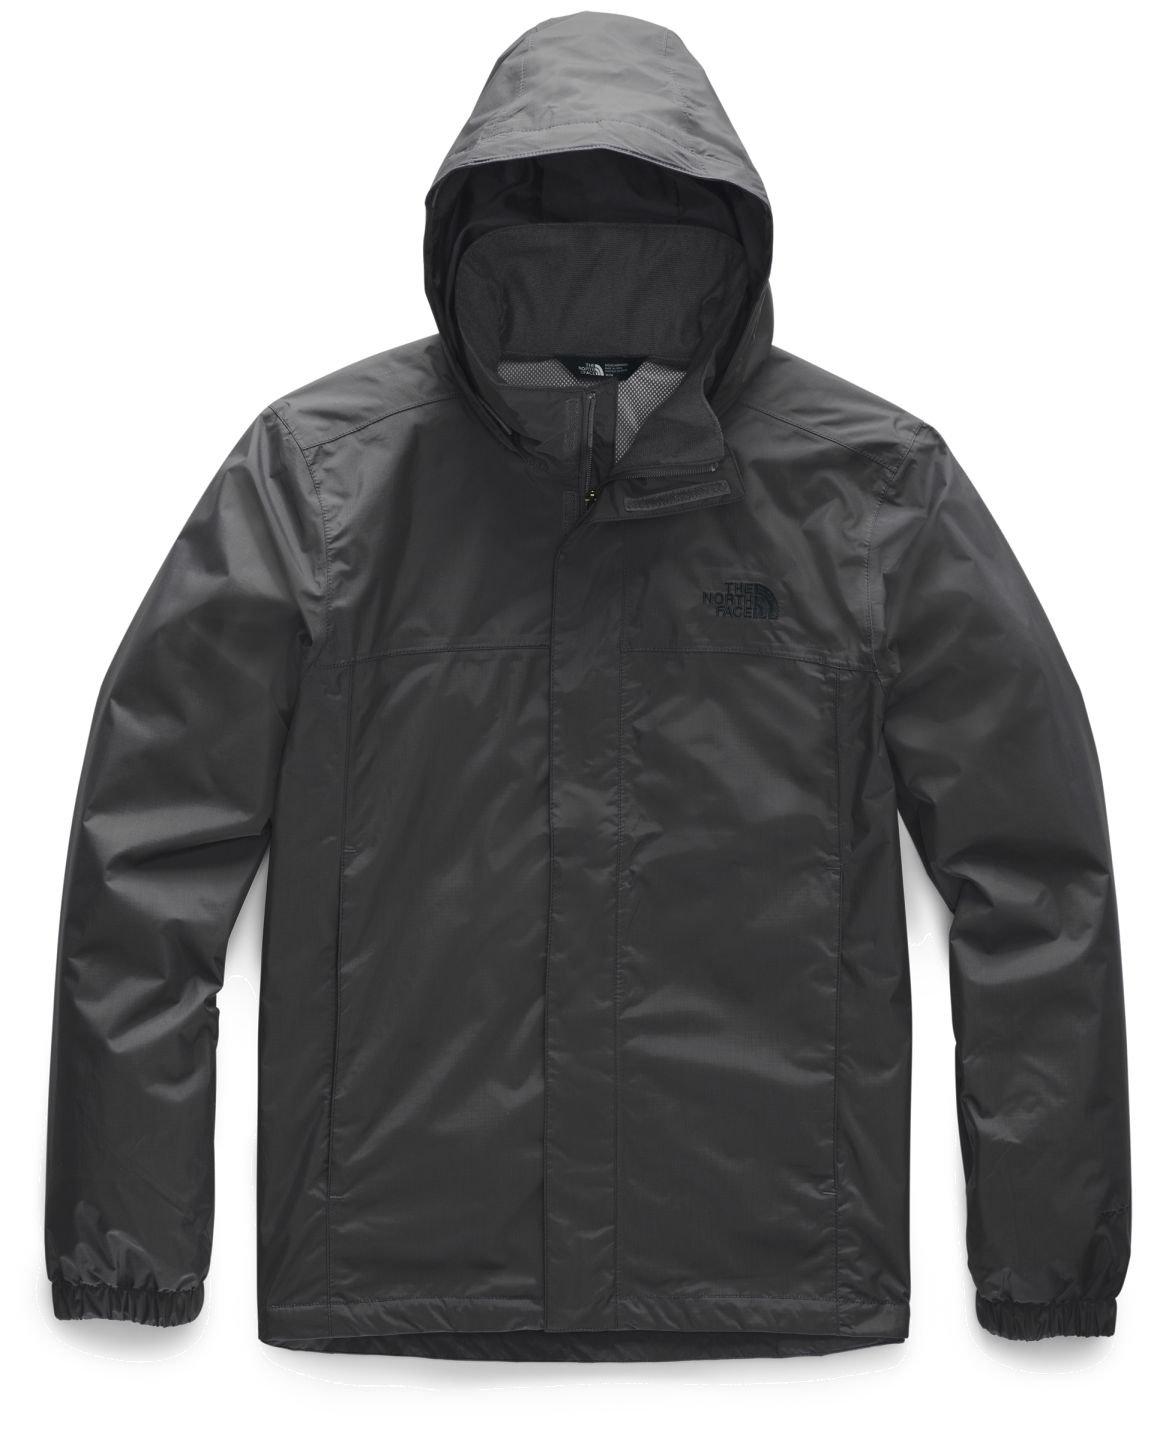 cf7a2410a The North Face Resolve 2 Jacket - Men's